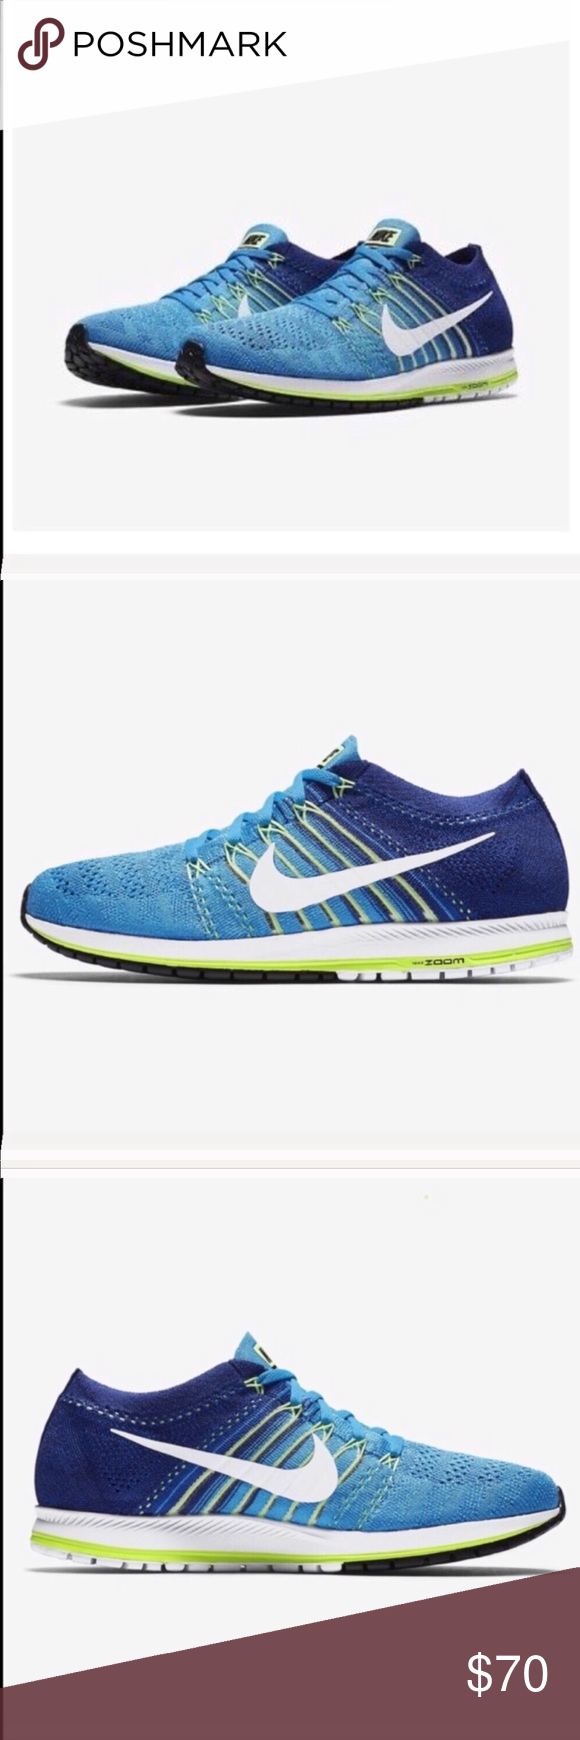 20b06559b8422 LIMITED EDITION NWT Nike Zoom Flyknit Streak Size  7 Description  Please  check out my